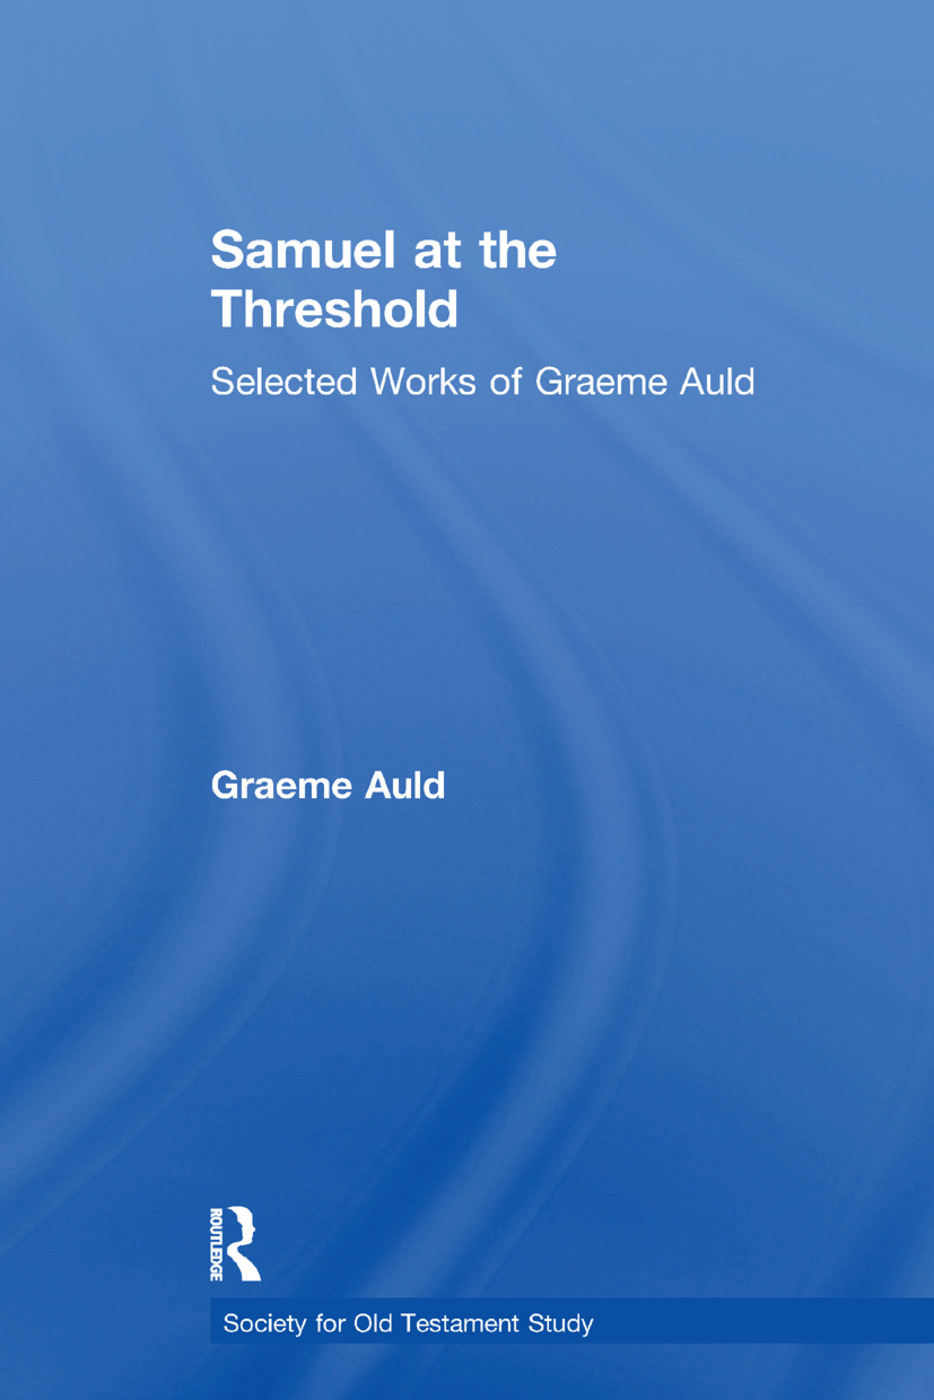 Samuel at the Threshold: Selected Works of Graeme Auld book cover